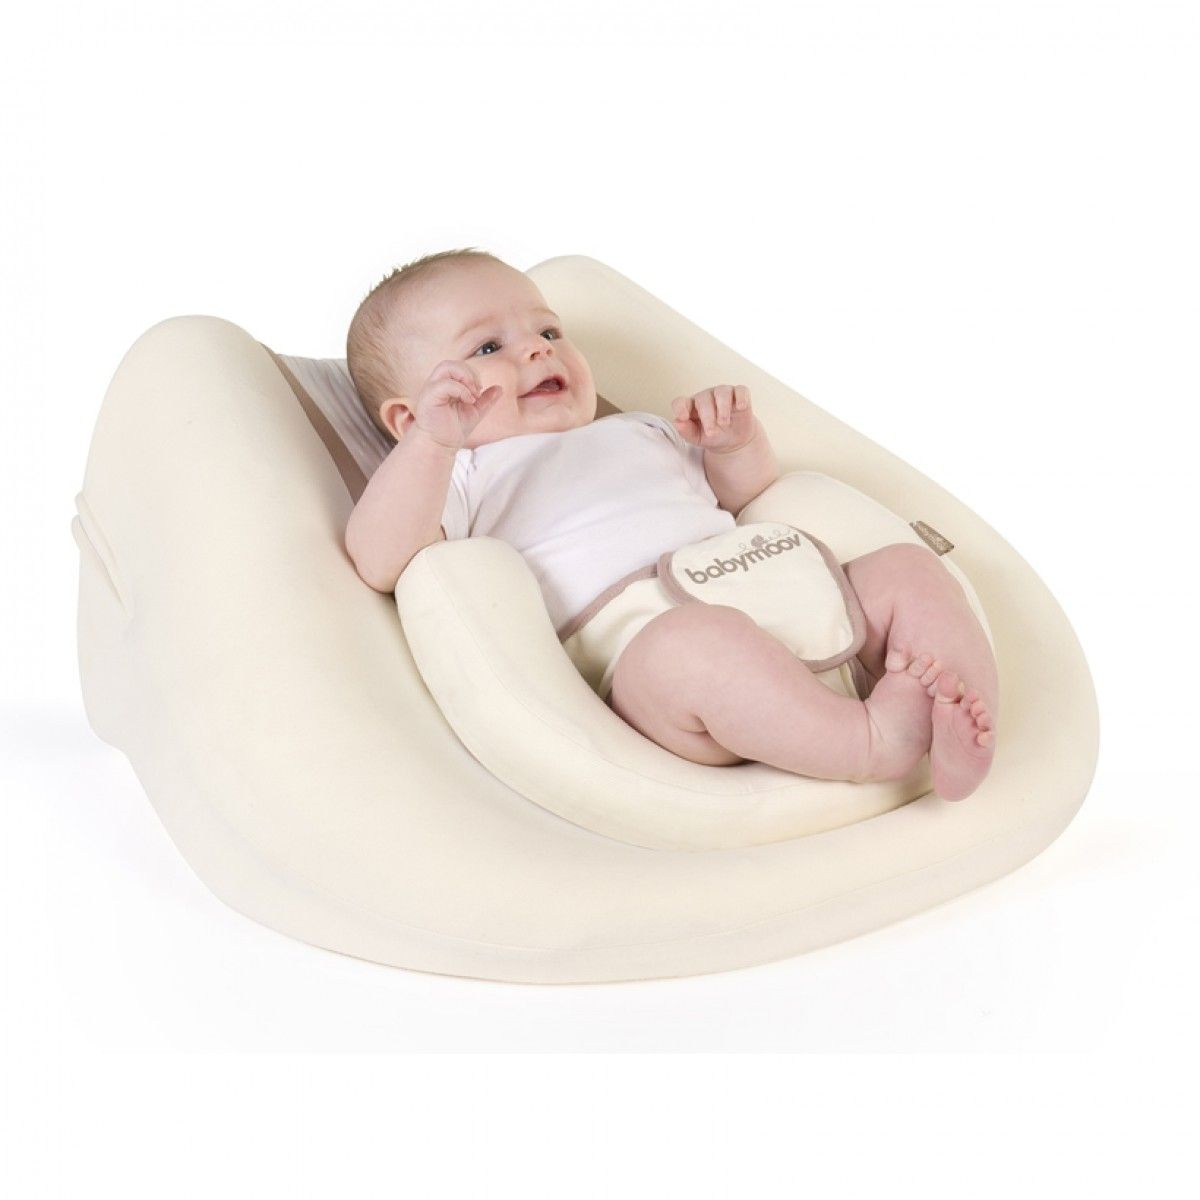 Crib wedges for babies - The Babymoov Ergonest Is A Reversible Crib Wedge That Helps Your Baby To Get A Safer